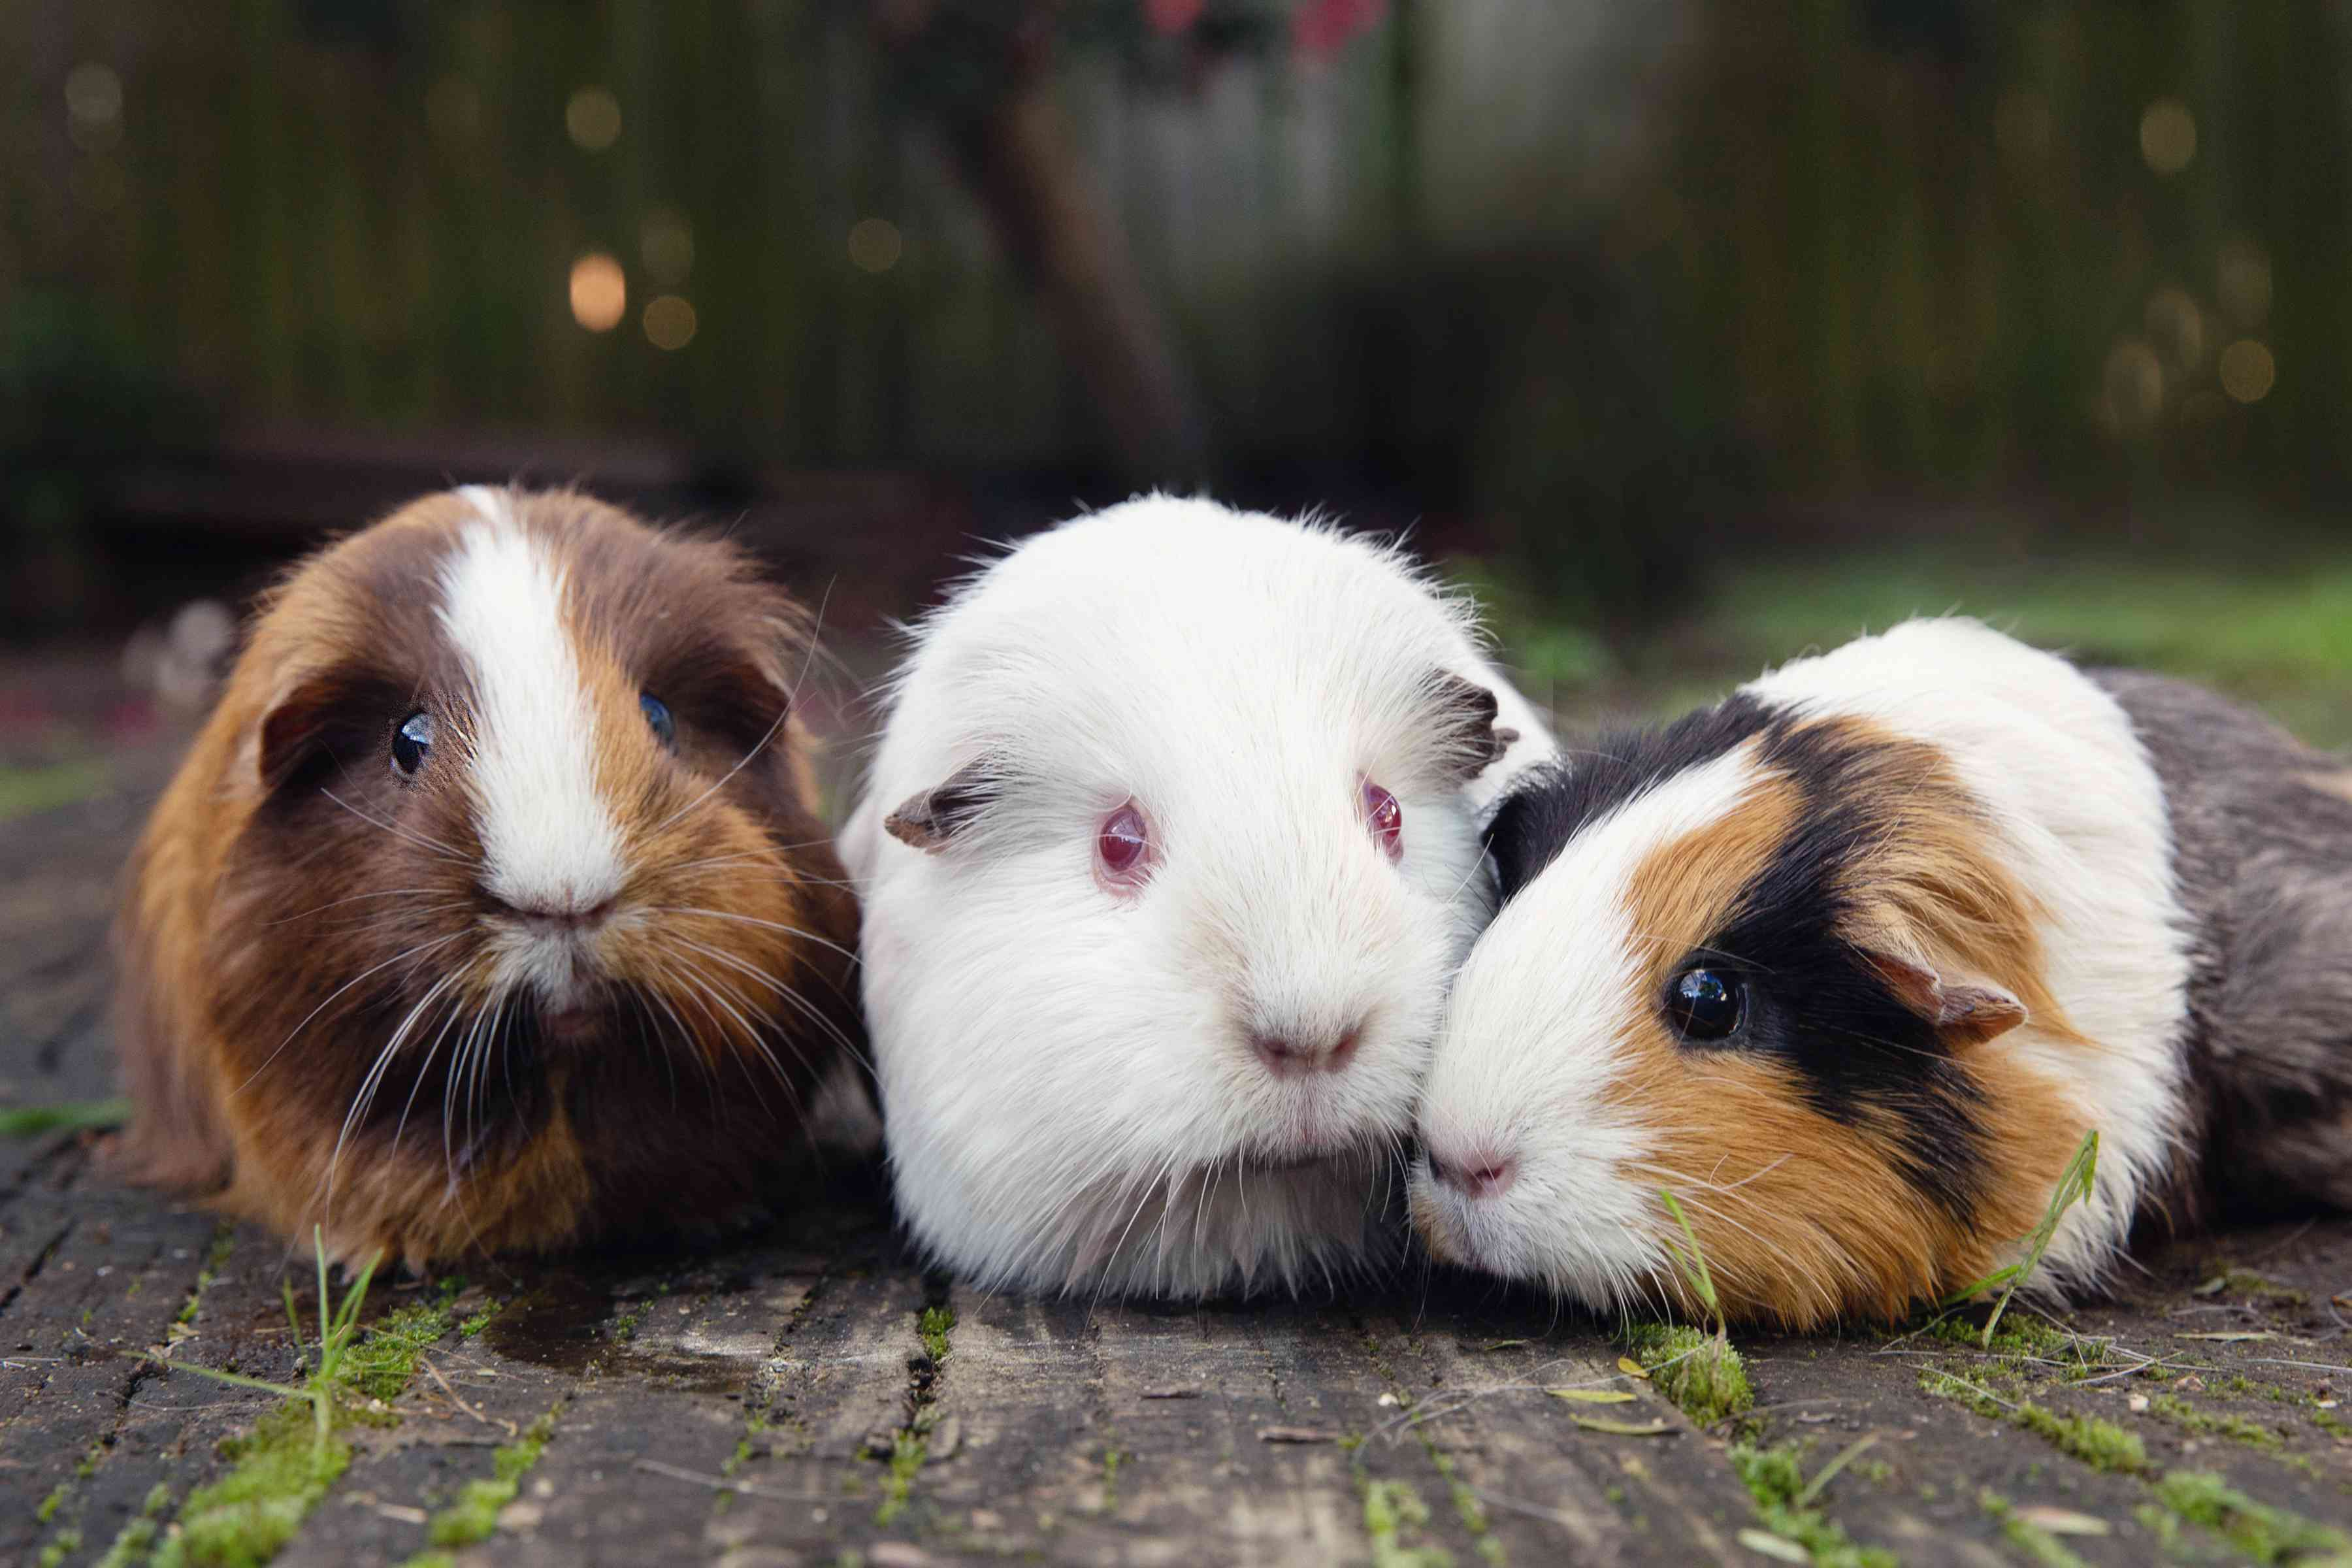 Three guinea pigs with brown and white, all white and black, brown and white fur sitting next to each other